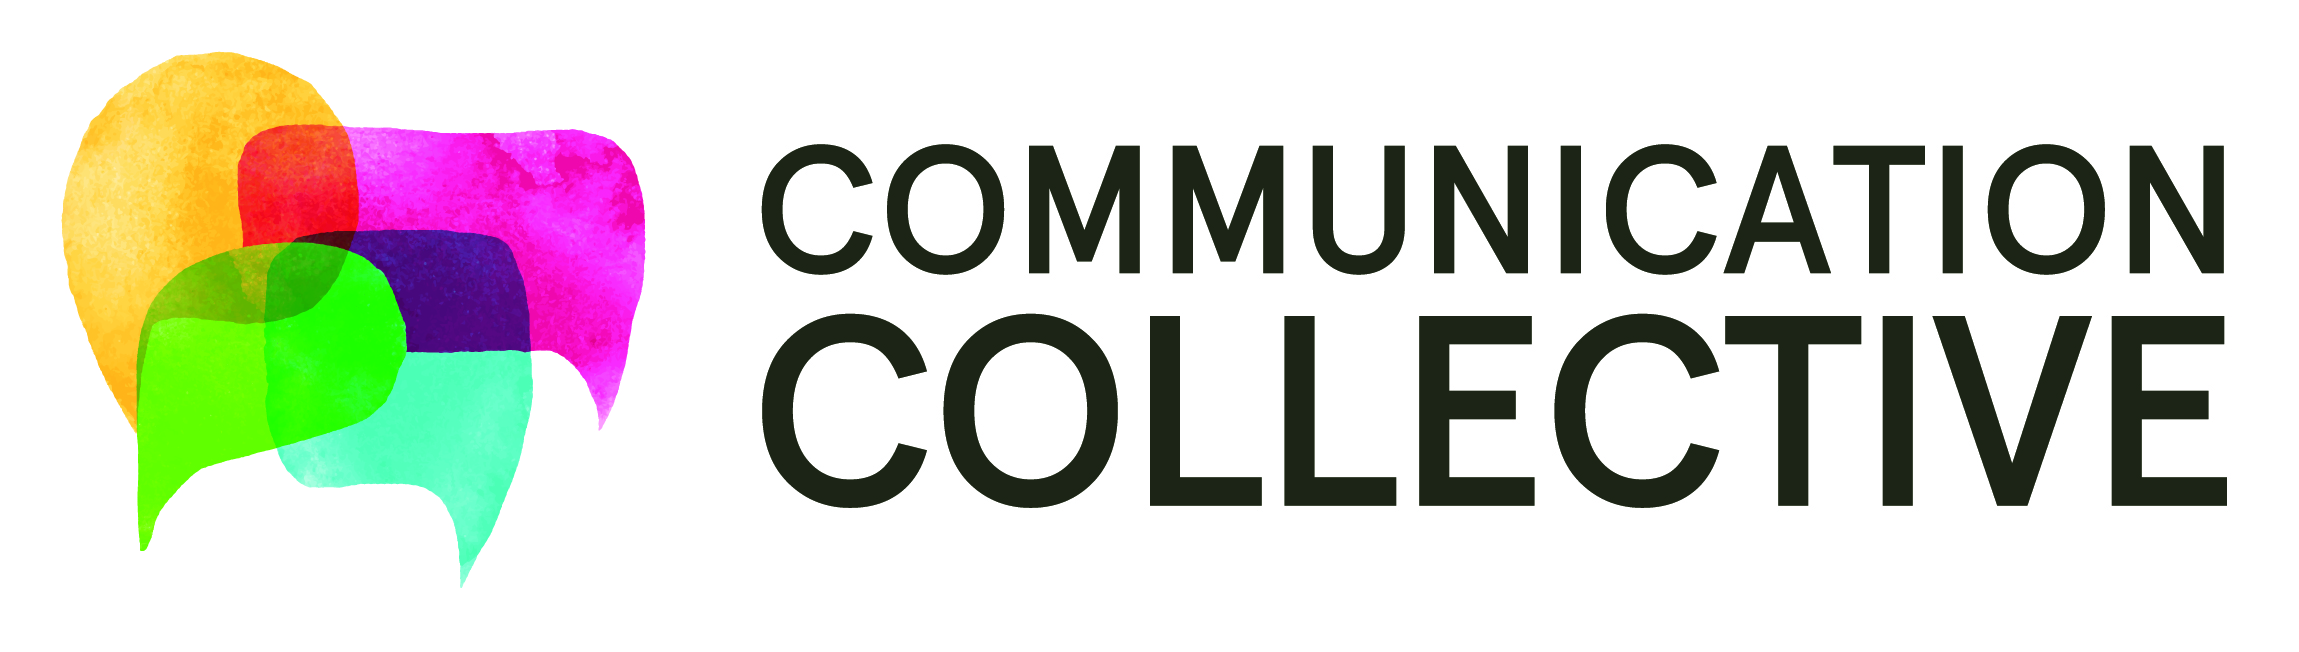 Communication Collective logo